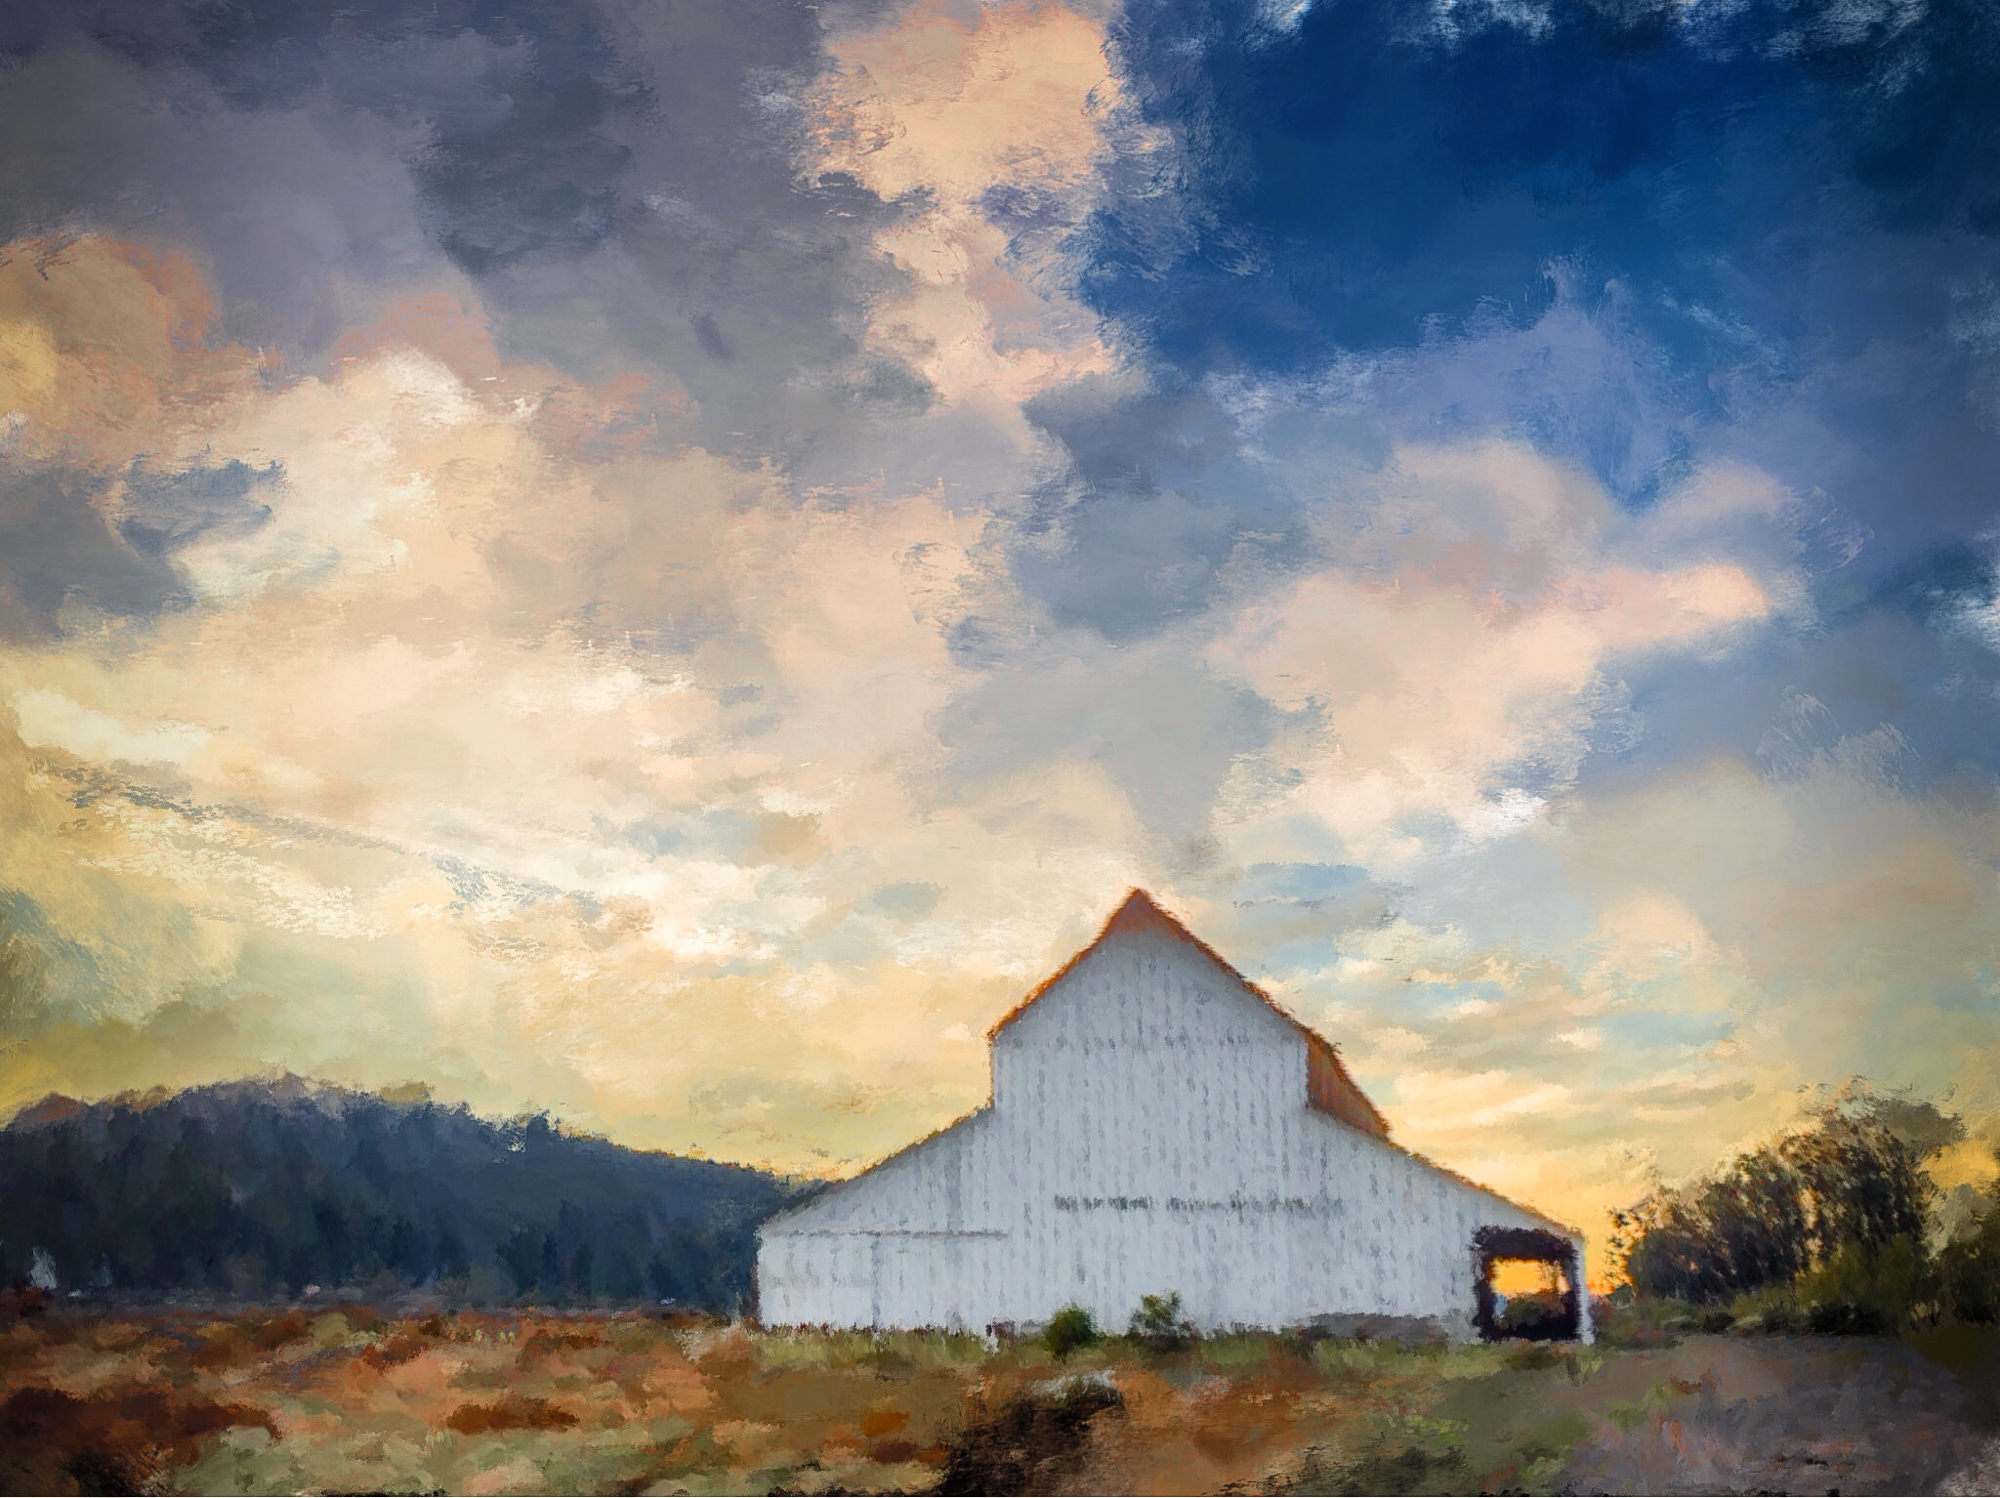 elizabeth-fenwick-photography-painterly-inverness-ca-barn-point-reyes-.jpg